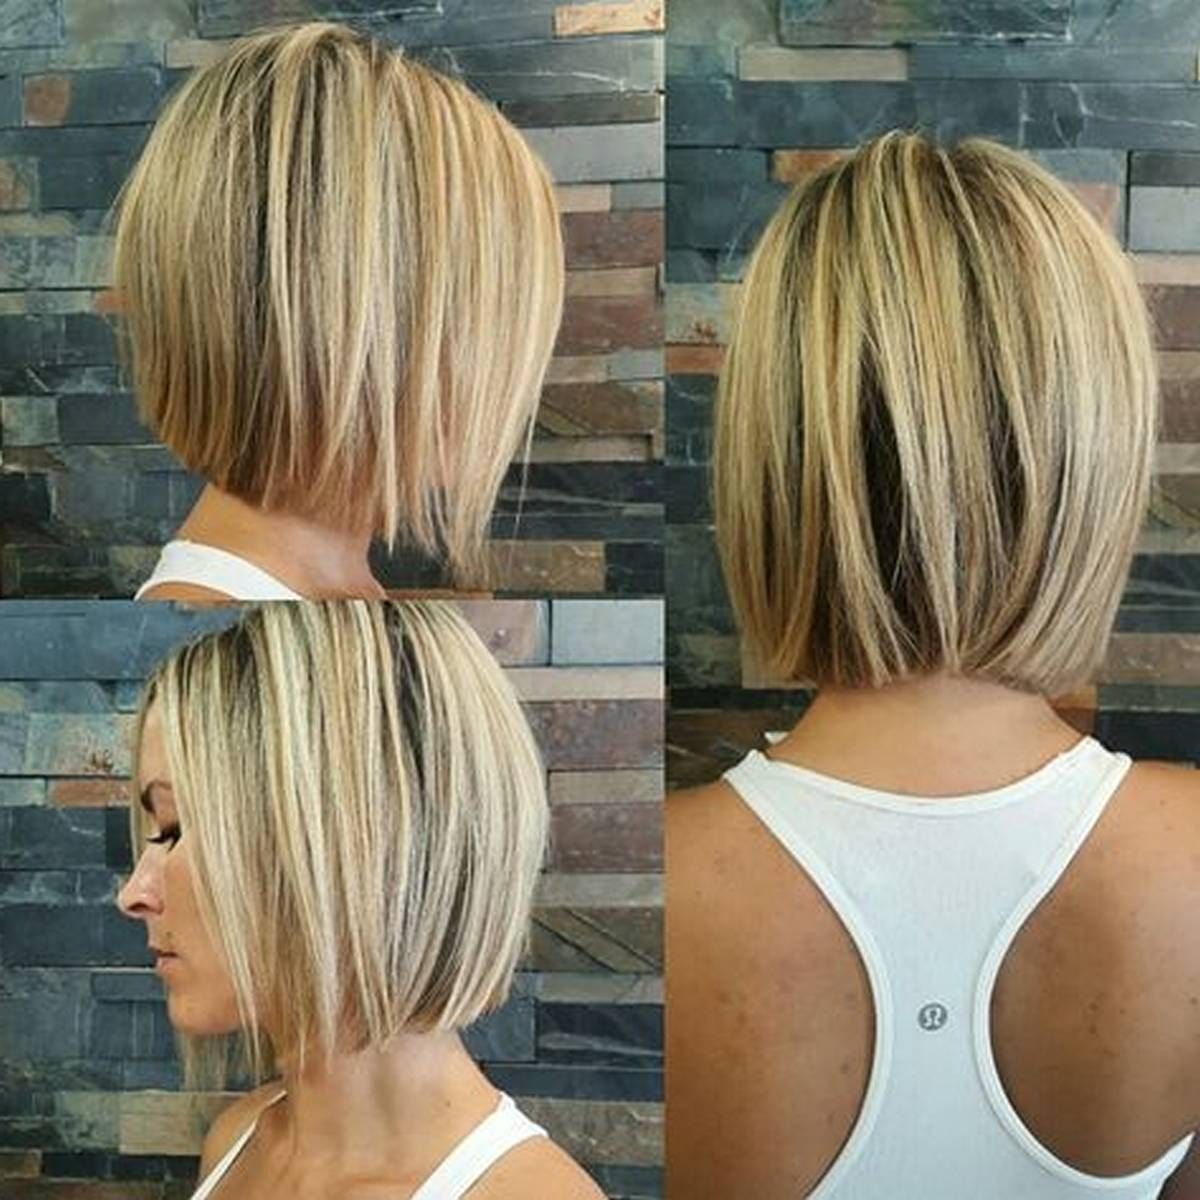 Diy Hairstyles For Long Hair: 210 Hairstyles DIY And Tutorial For All Hair Lengths